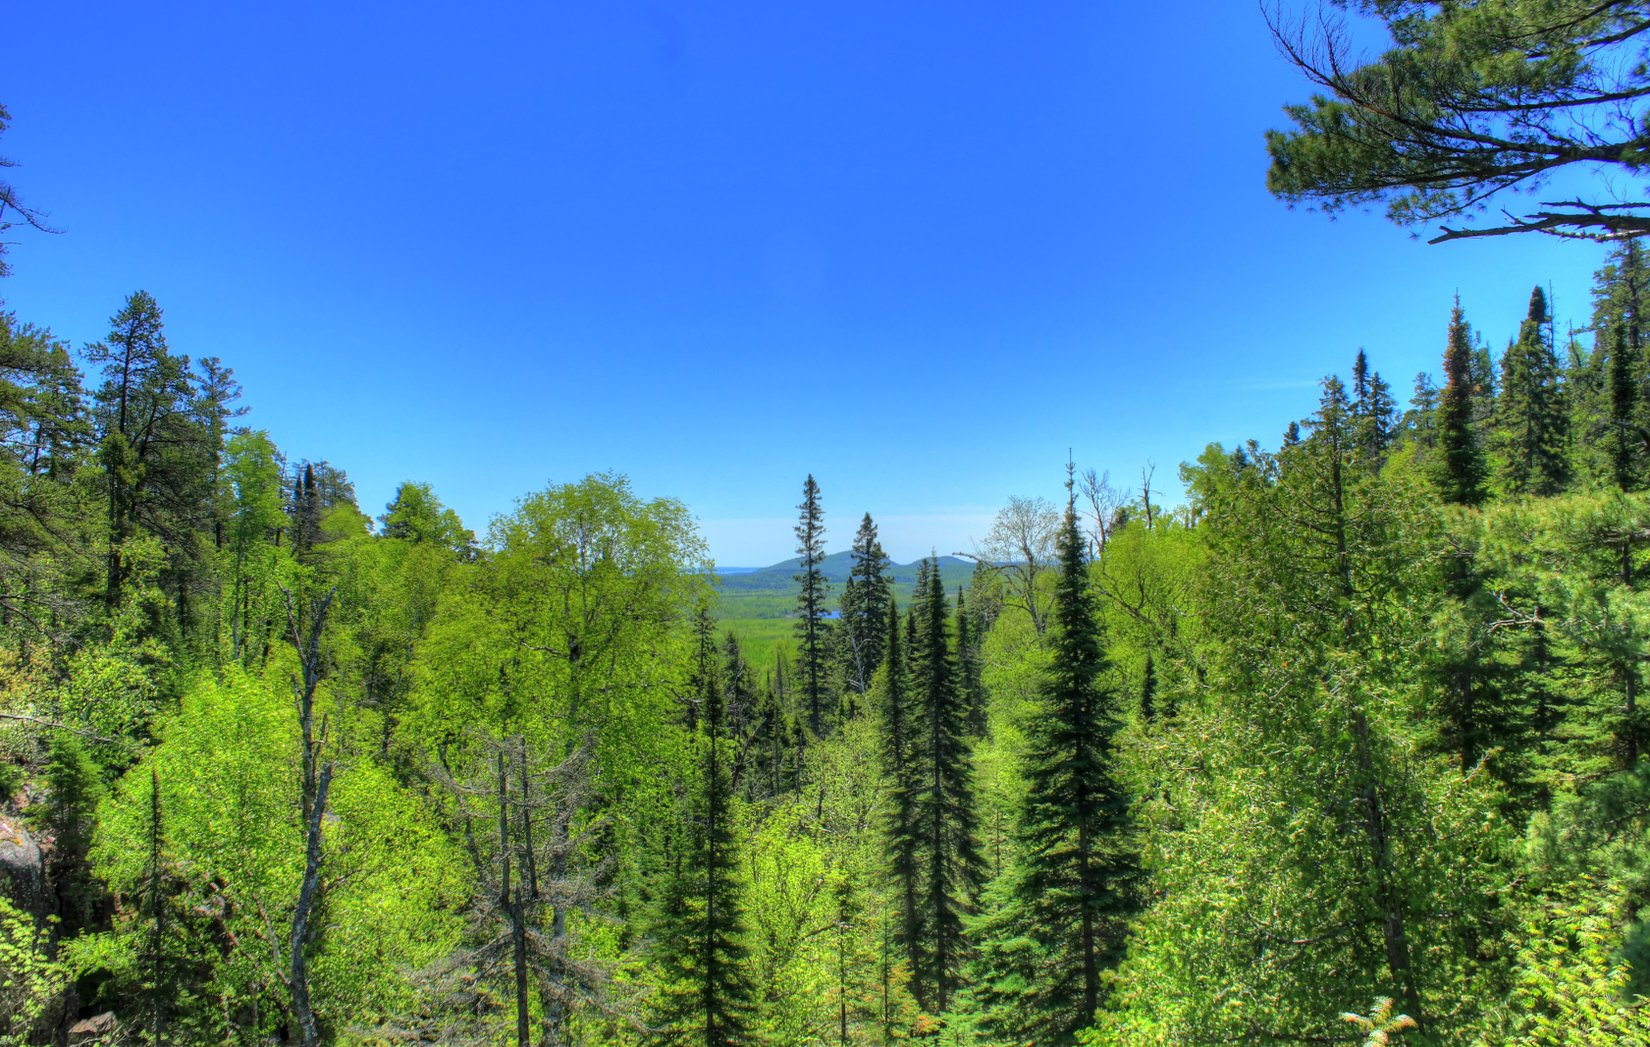 ontario-ouimet-canyon-provicial-park-looking-over-the-trees.jpg